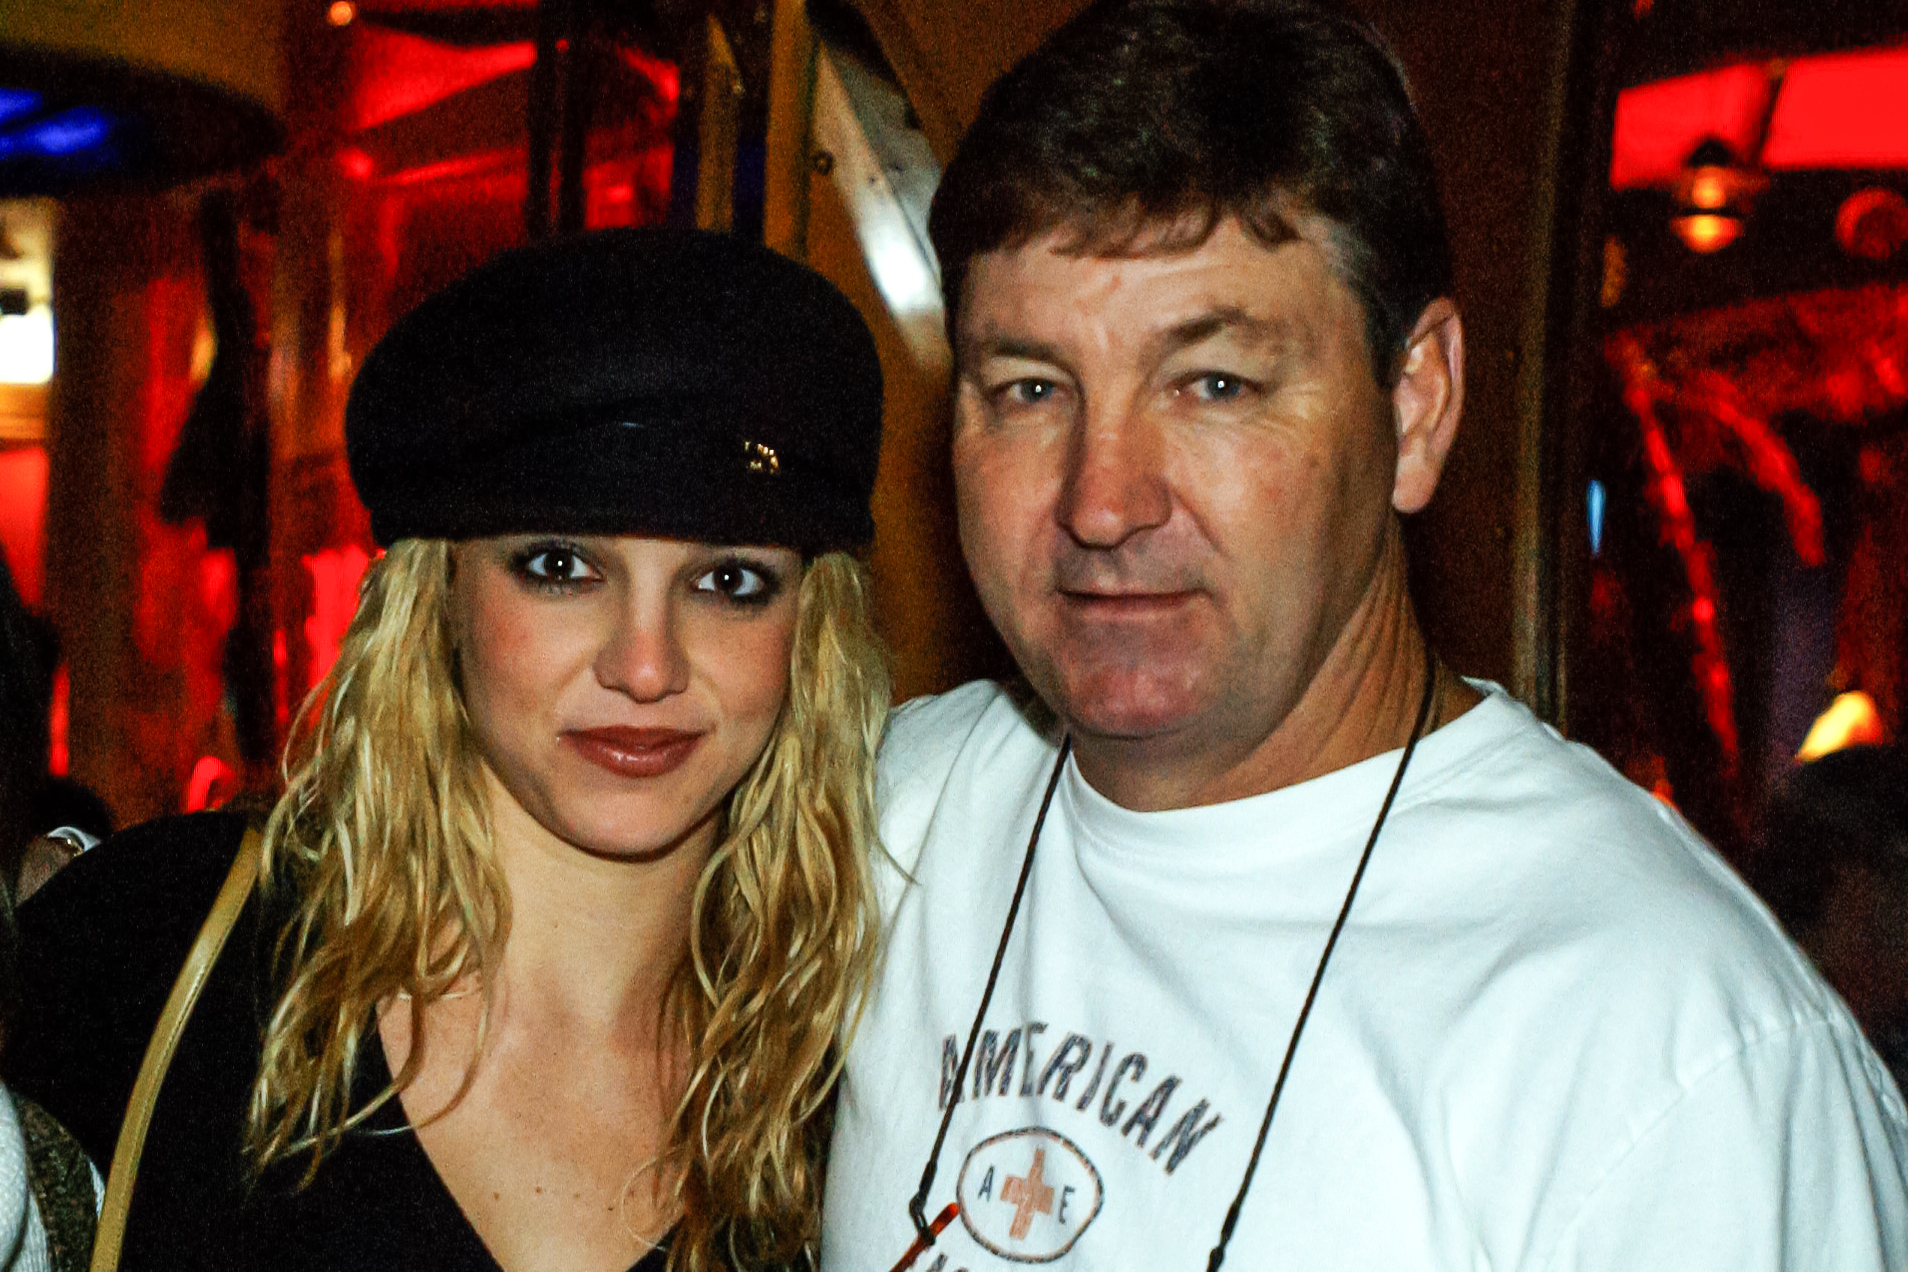 Britney Spears' attorney pushes ahead with request to remove her father as conservator